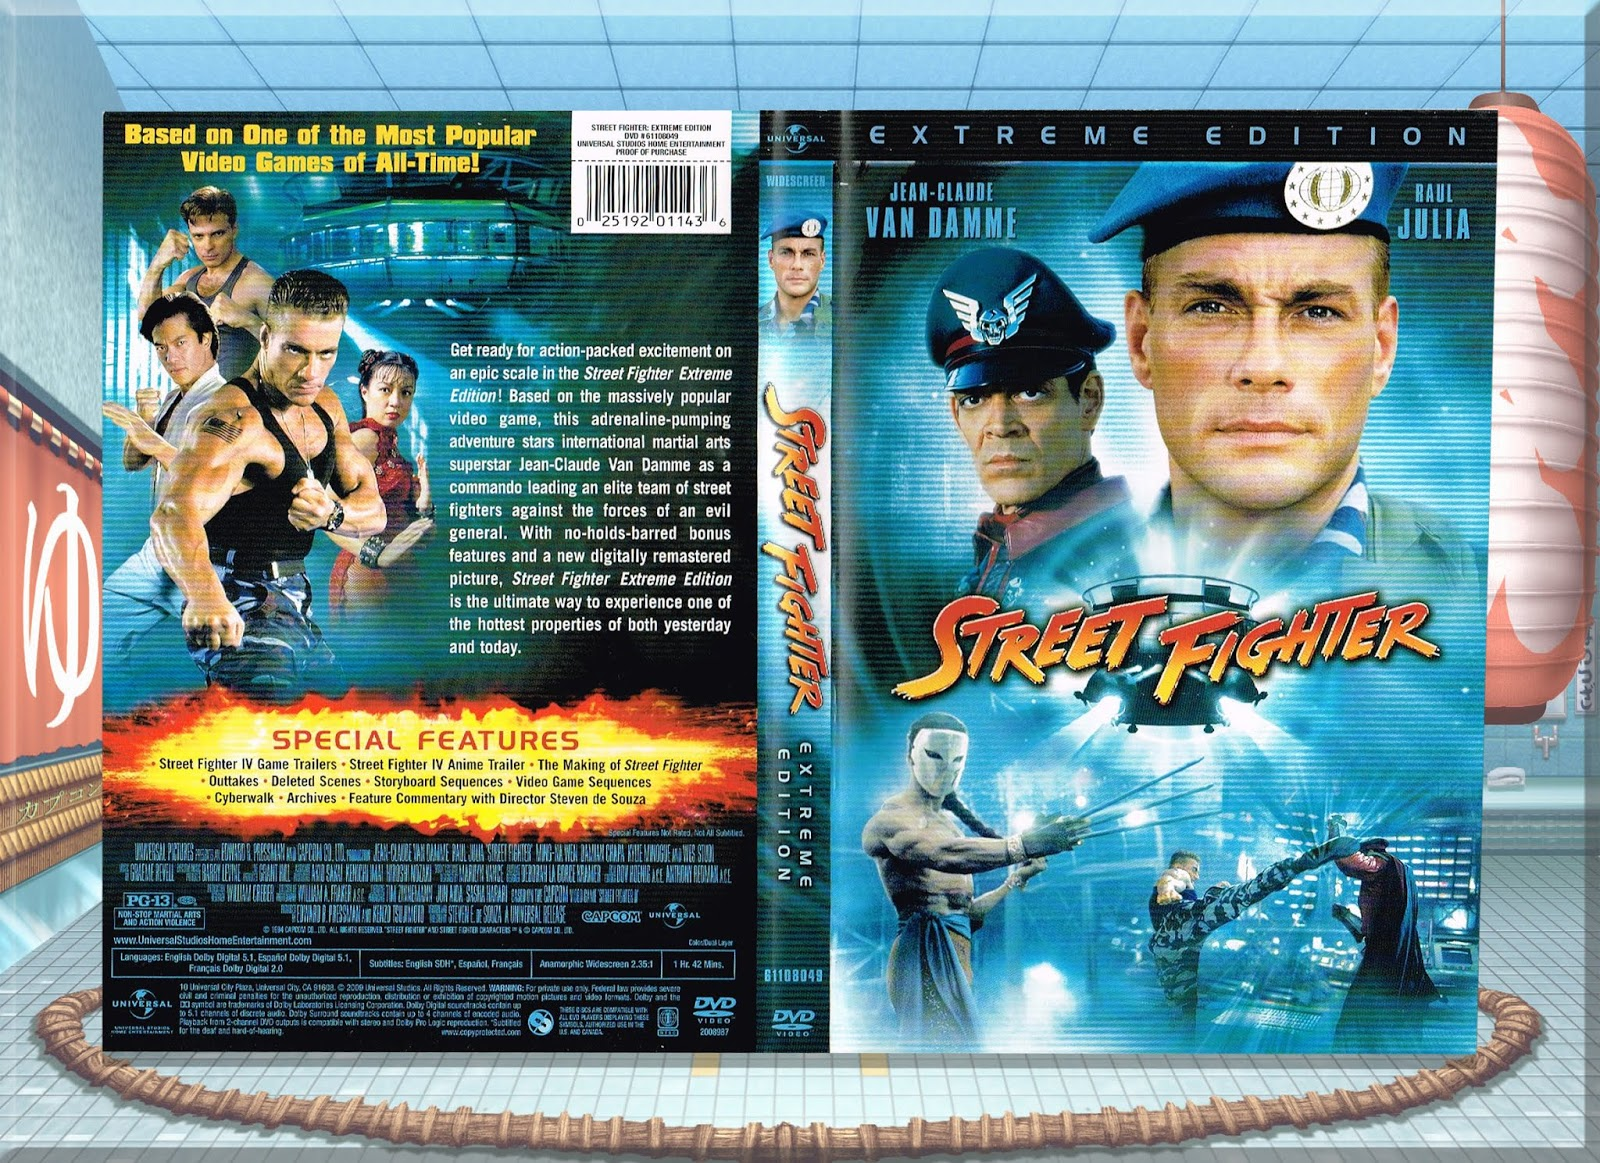 20 Years Before 2000 In Defense Of Street Fighter The Movie